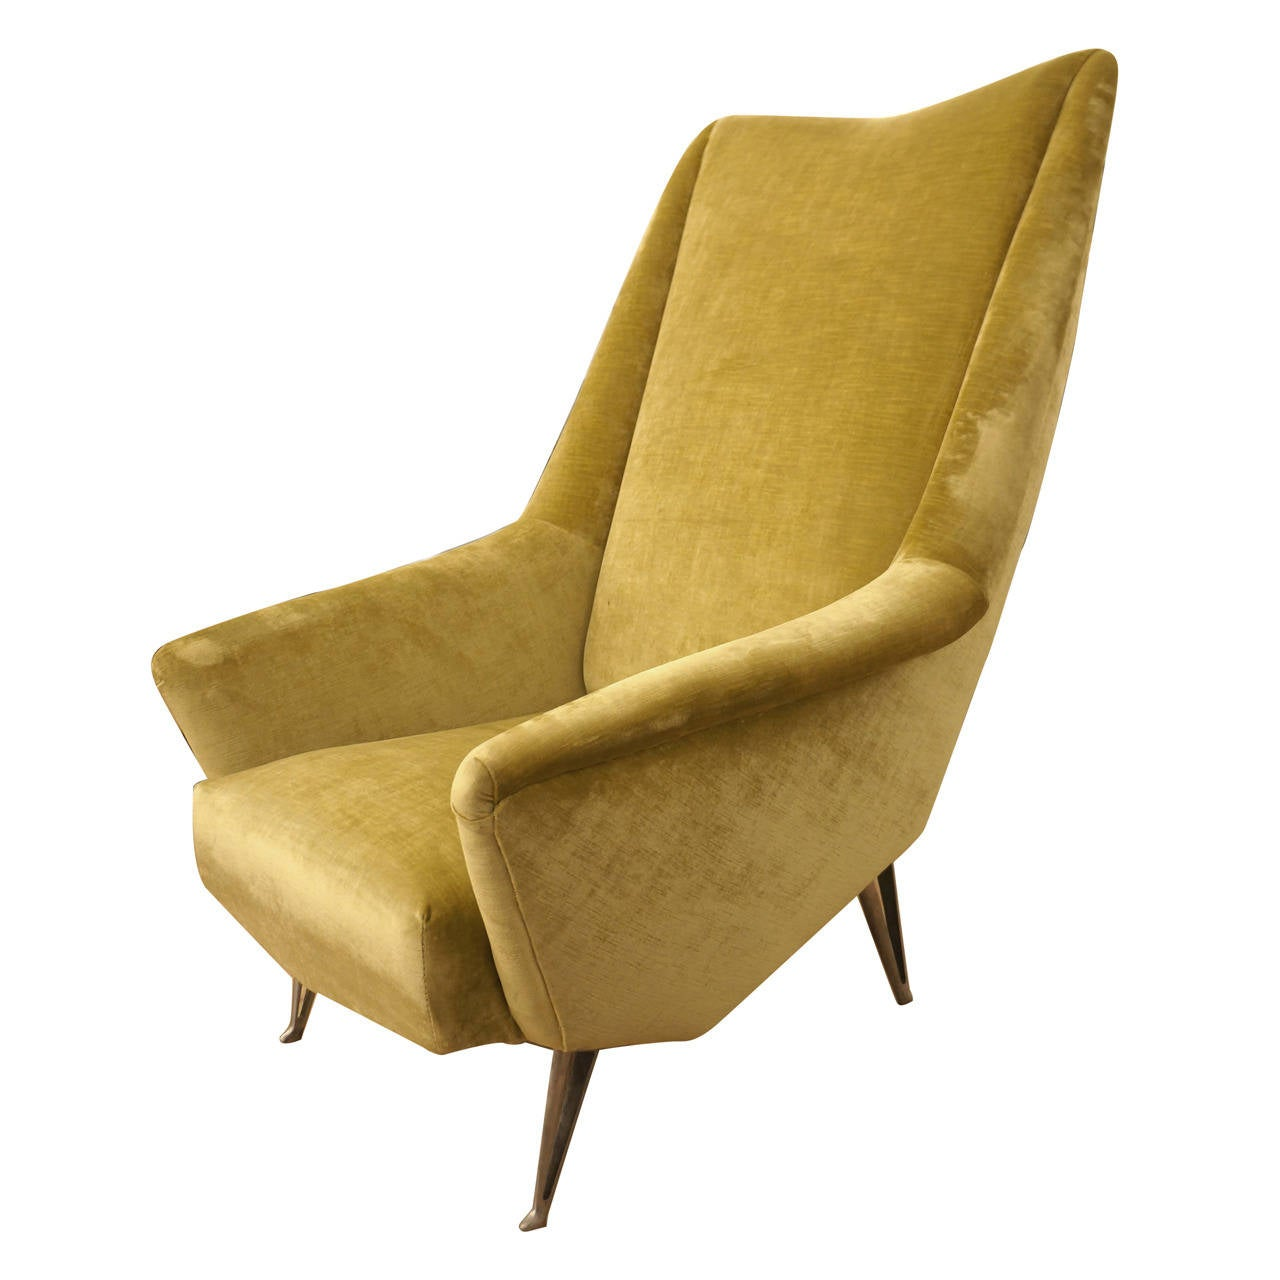 Design forward and comfortable italian mid century lounge chair by isa at 1stdibs - Mid century chair designers ...